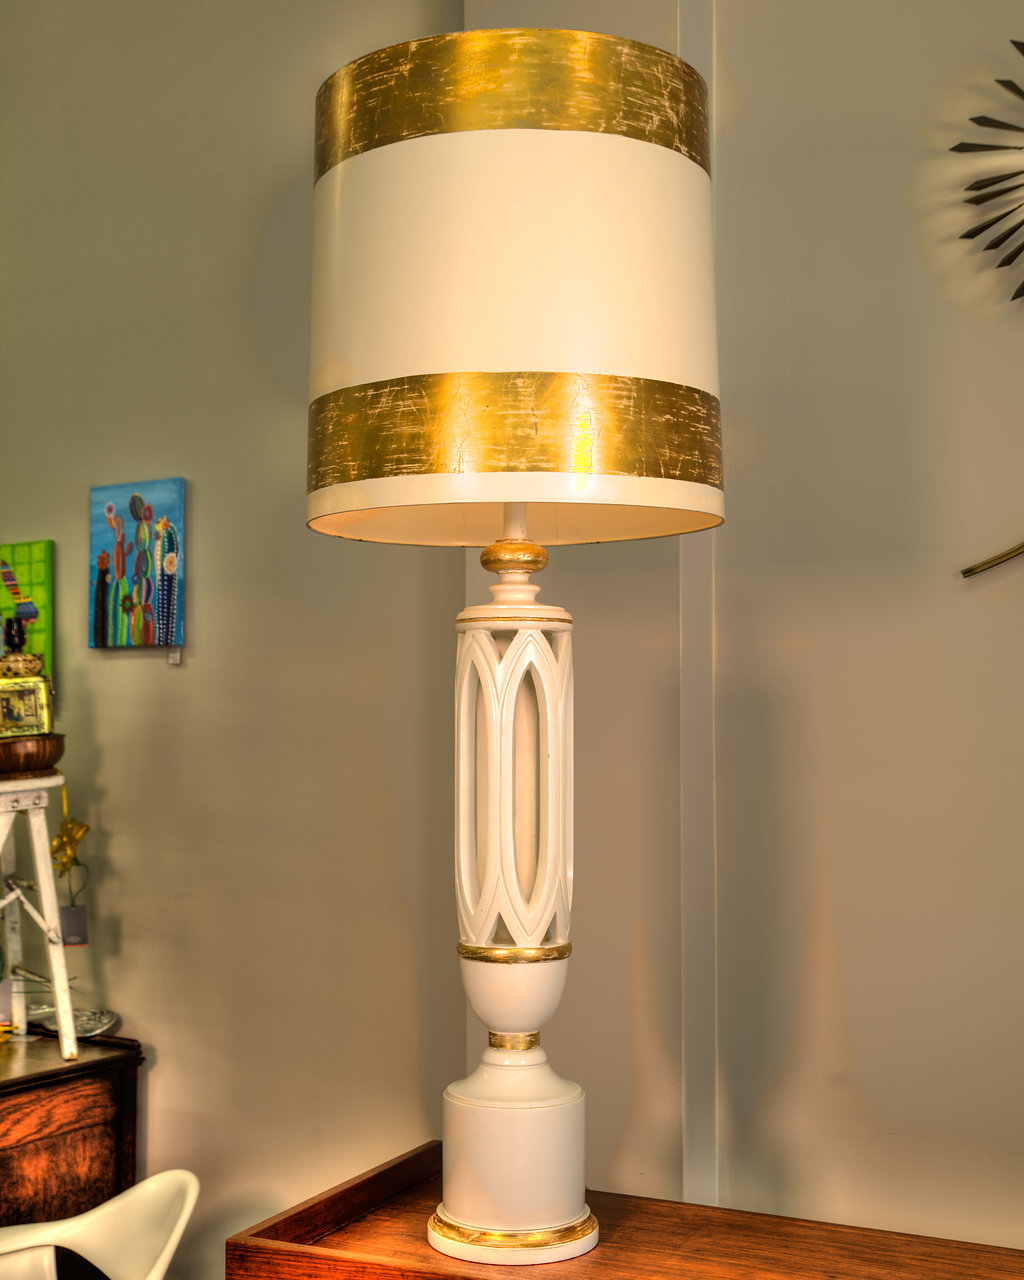 Searching for that one-of-a-kind vintage lamp? Look no further! Retro Knox offers floor to table, singles and sets, and all types of unique styles.